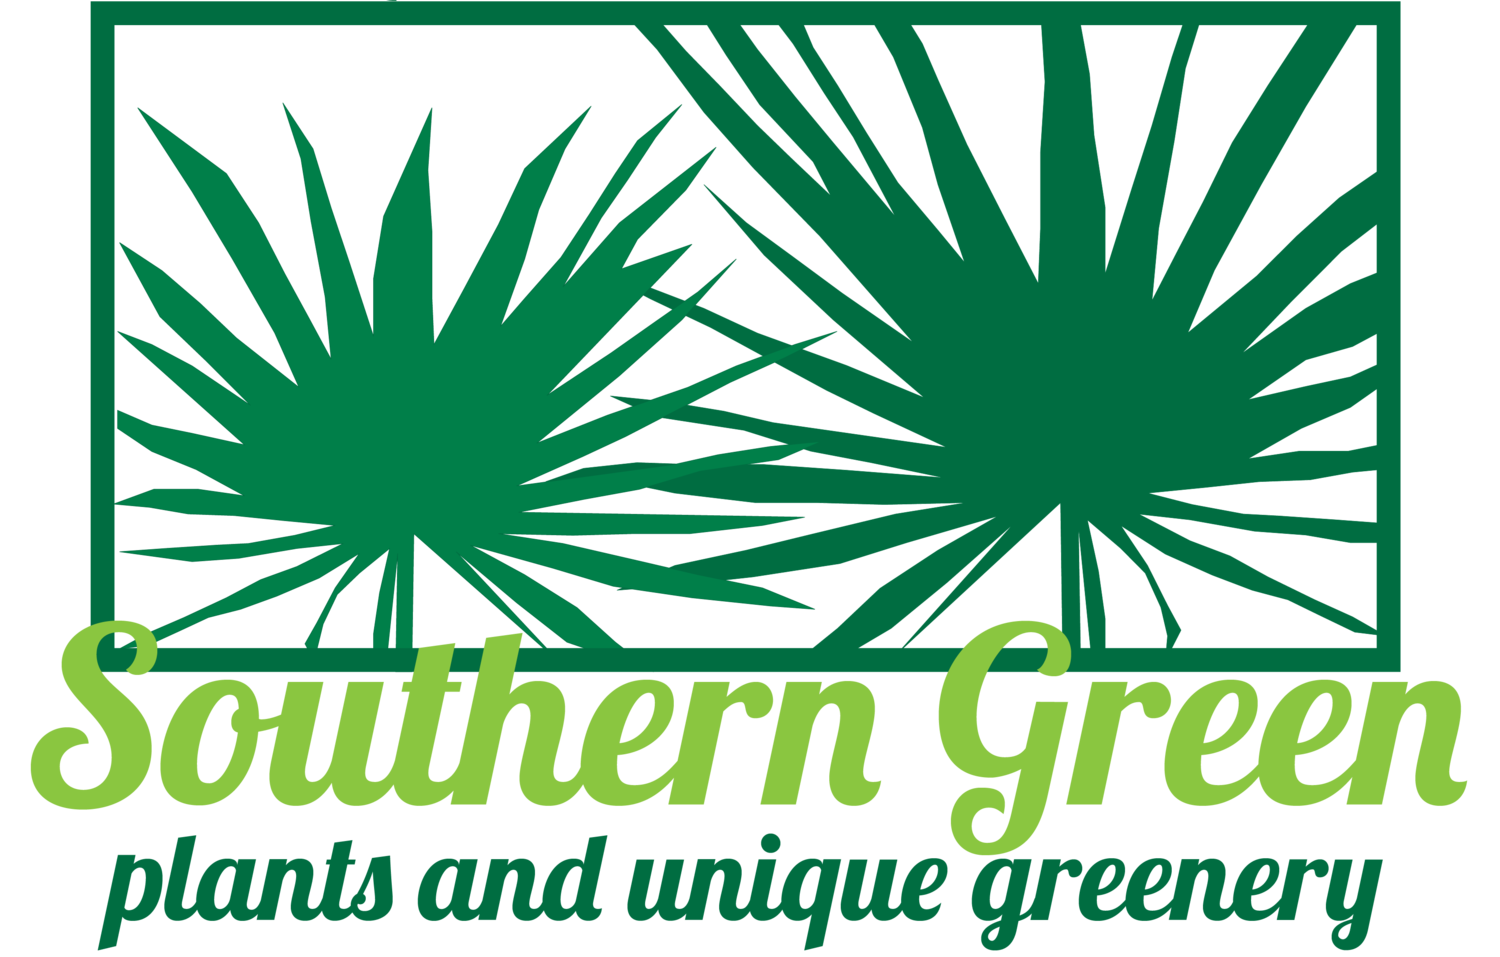 Southern Green